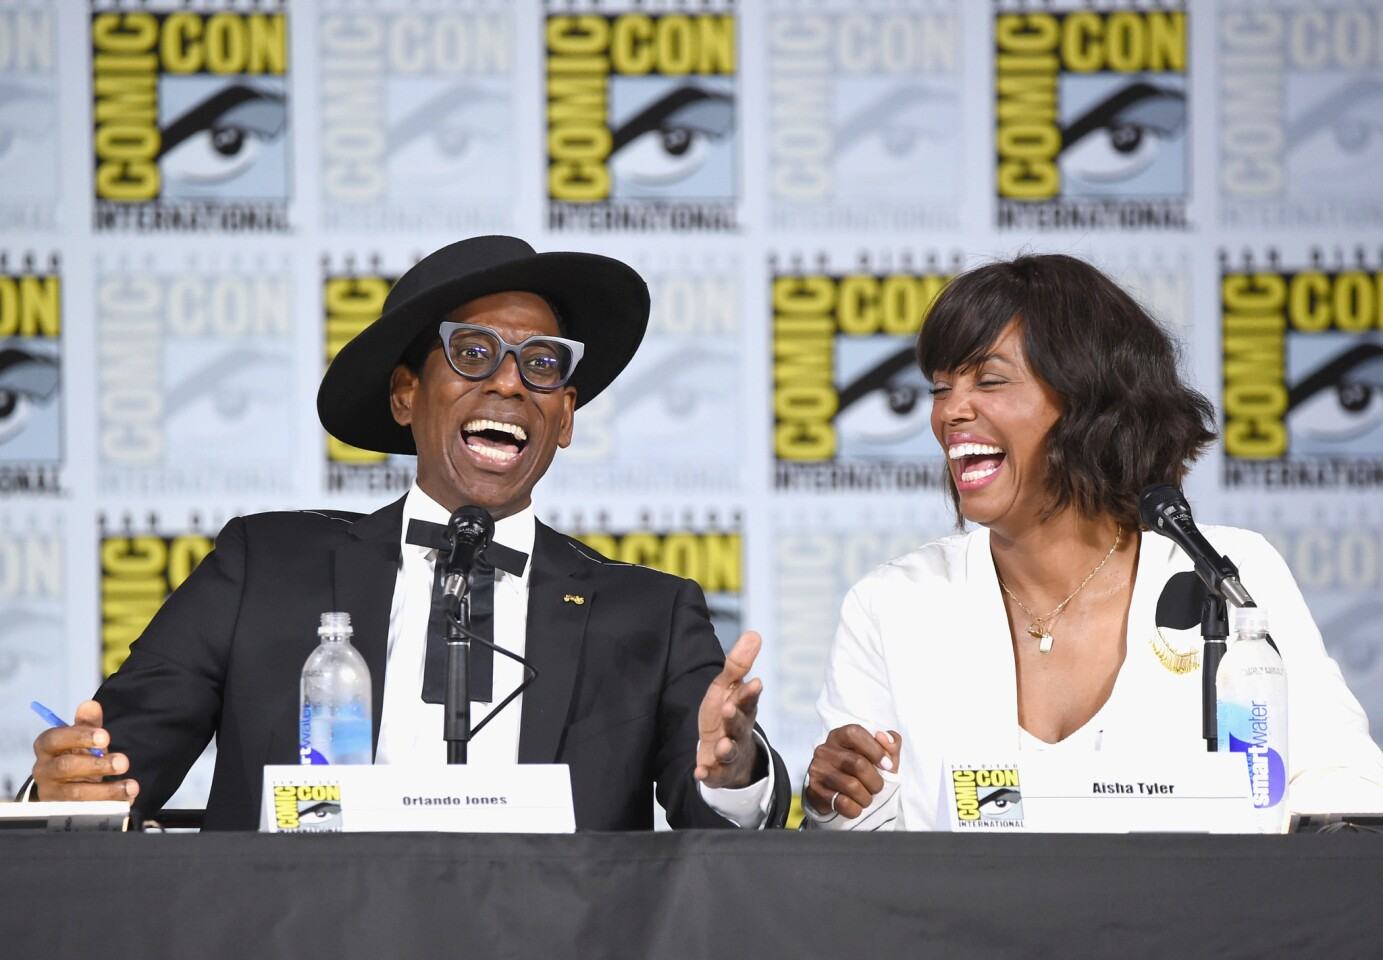 The Great Debate at Comic-Con